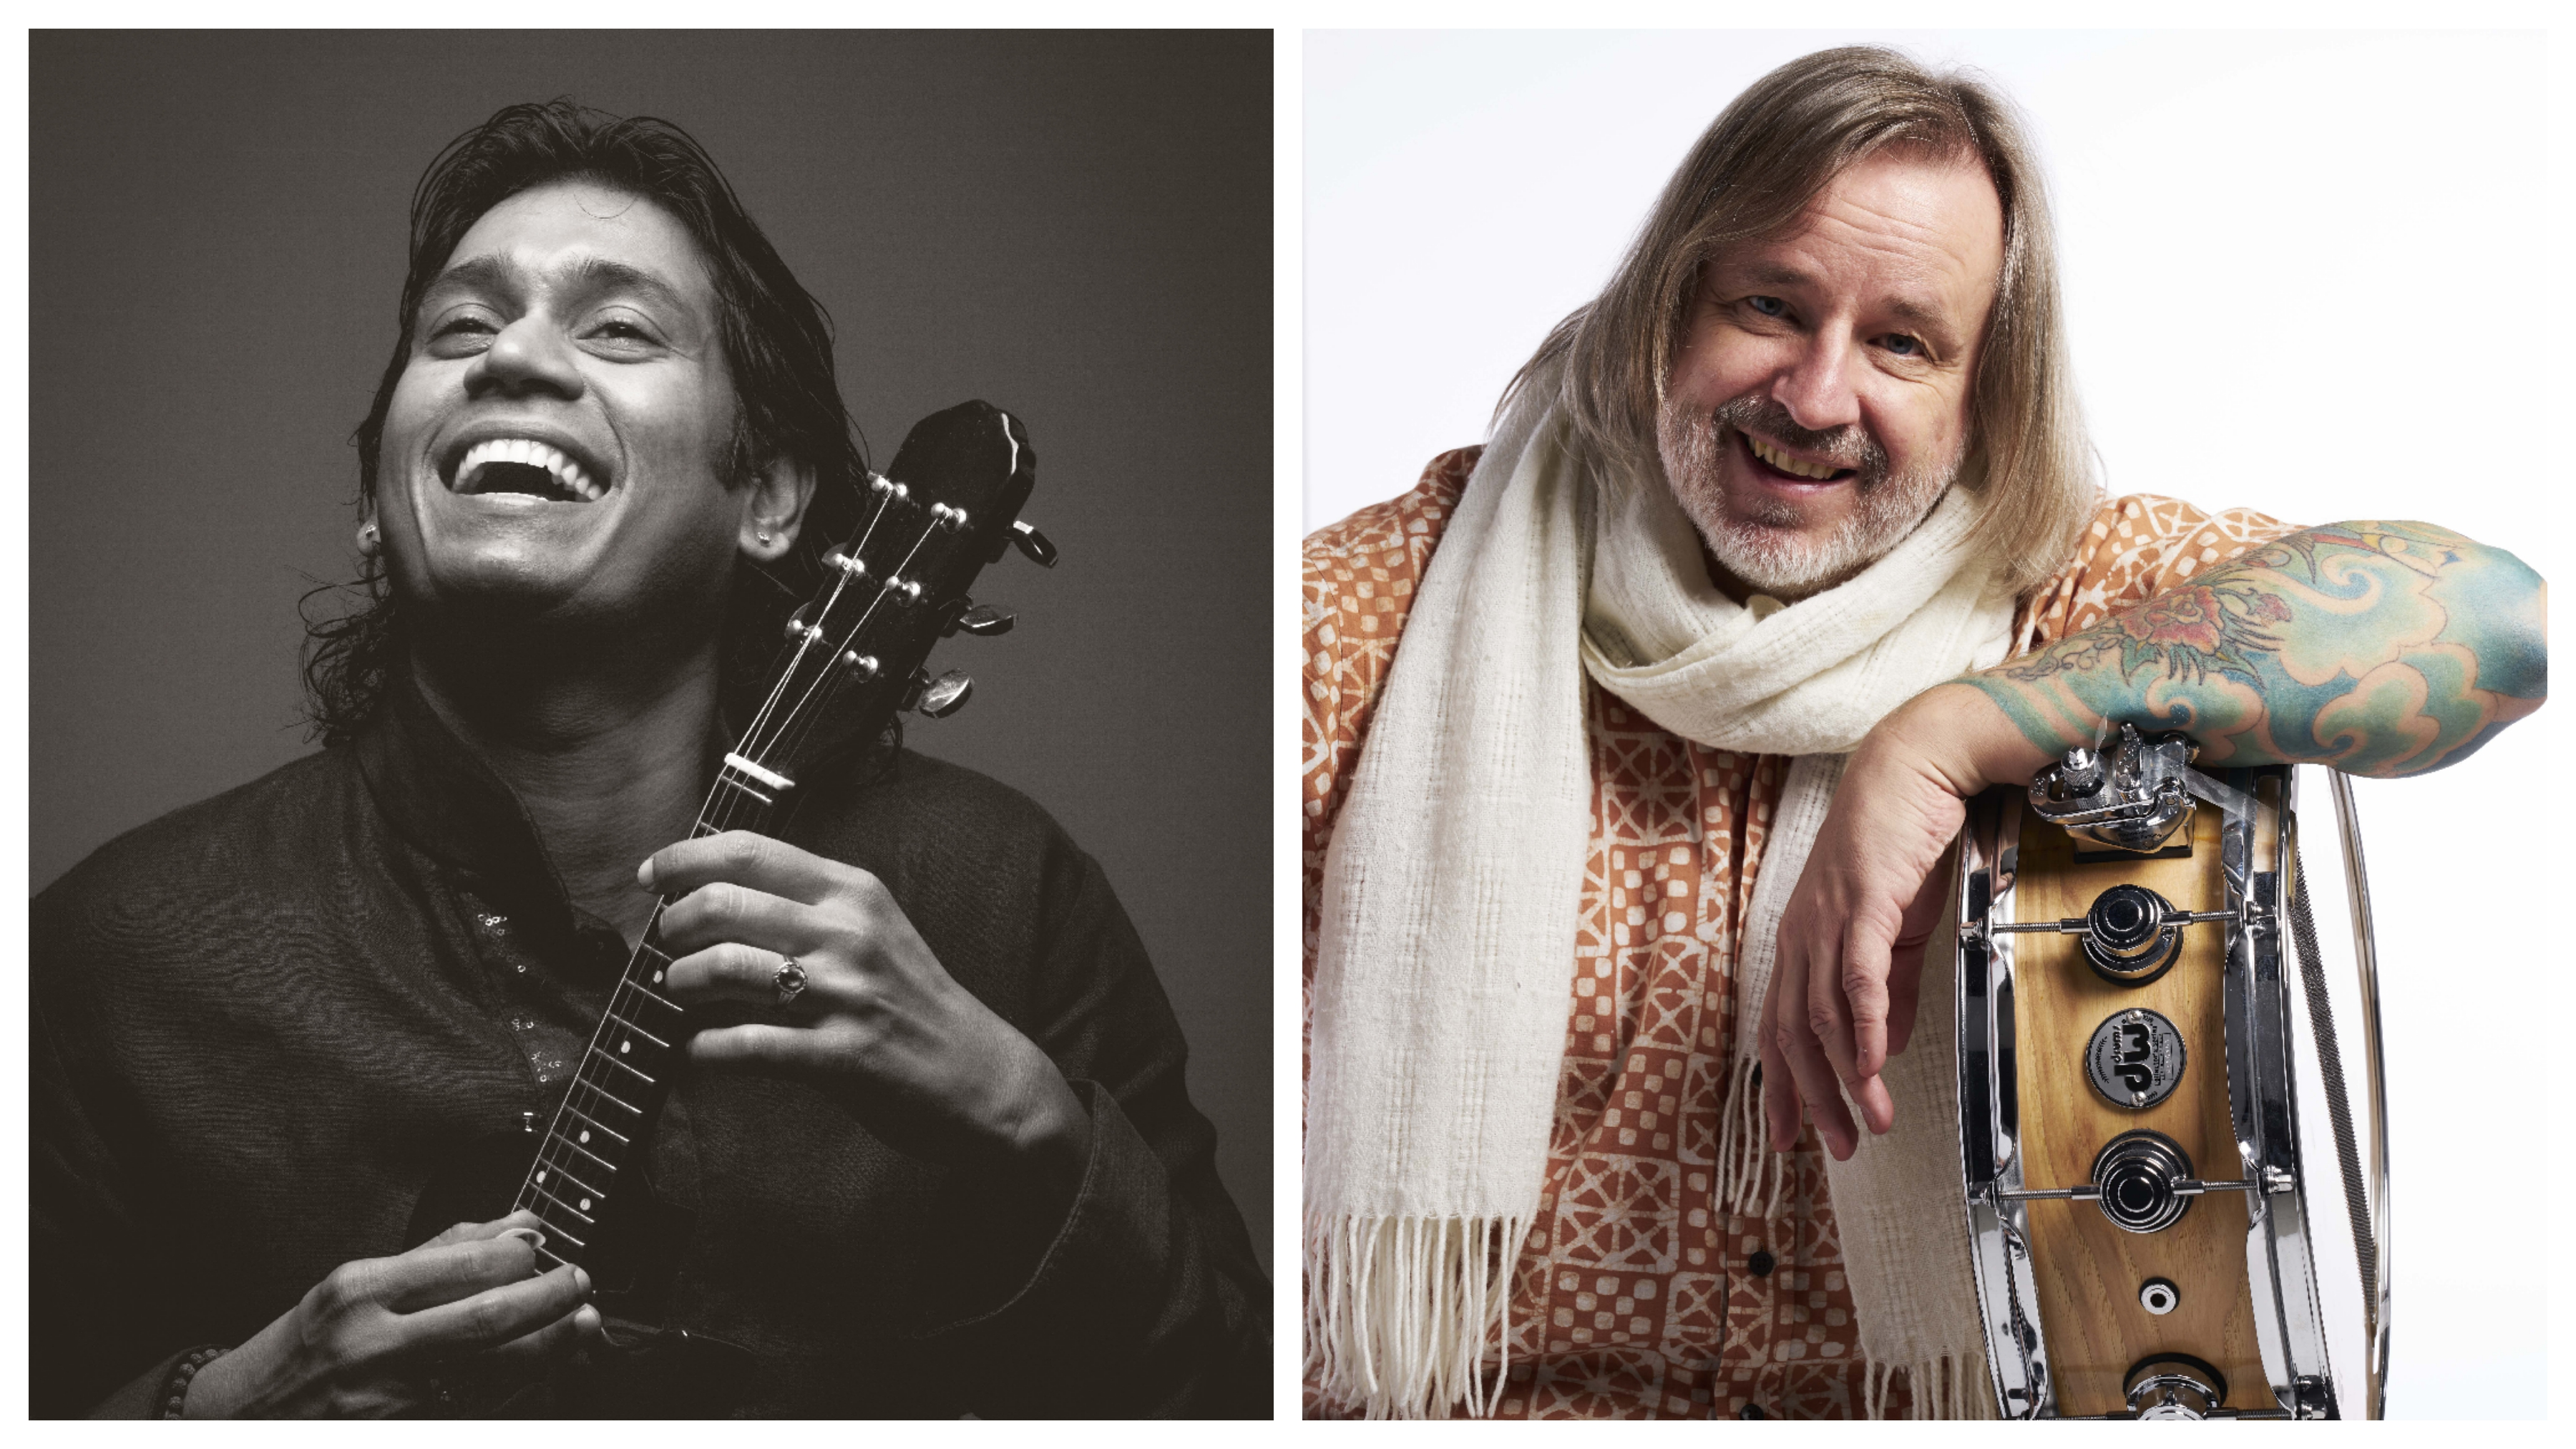 Uppalapu Rajesh (left) is the younger brother of late U Shrinivas. Pete Lockett (right) is versatile in Carnatic, Jazz and World music.  is well-versed in percussion traditions from music cultures around the world from traditional Japanese taiko drumming, to blues, funk, rock and classical.Photo courtesy: Arte Compass